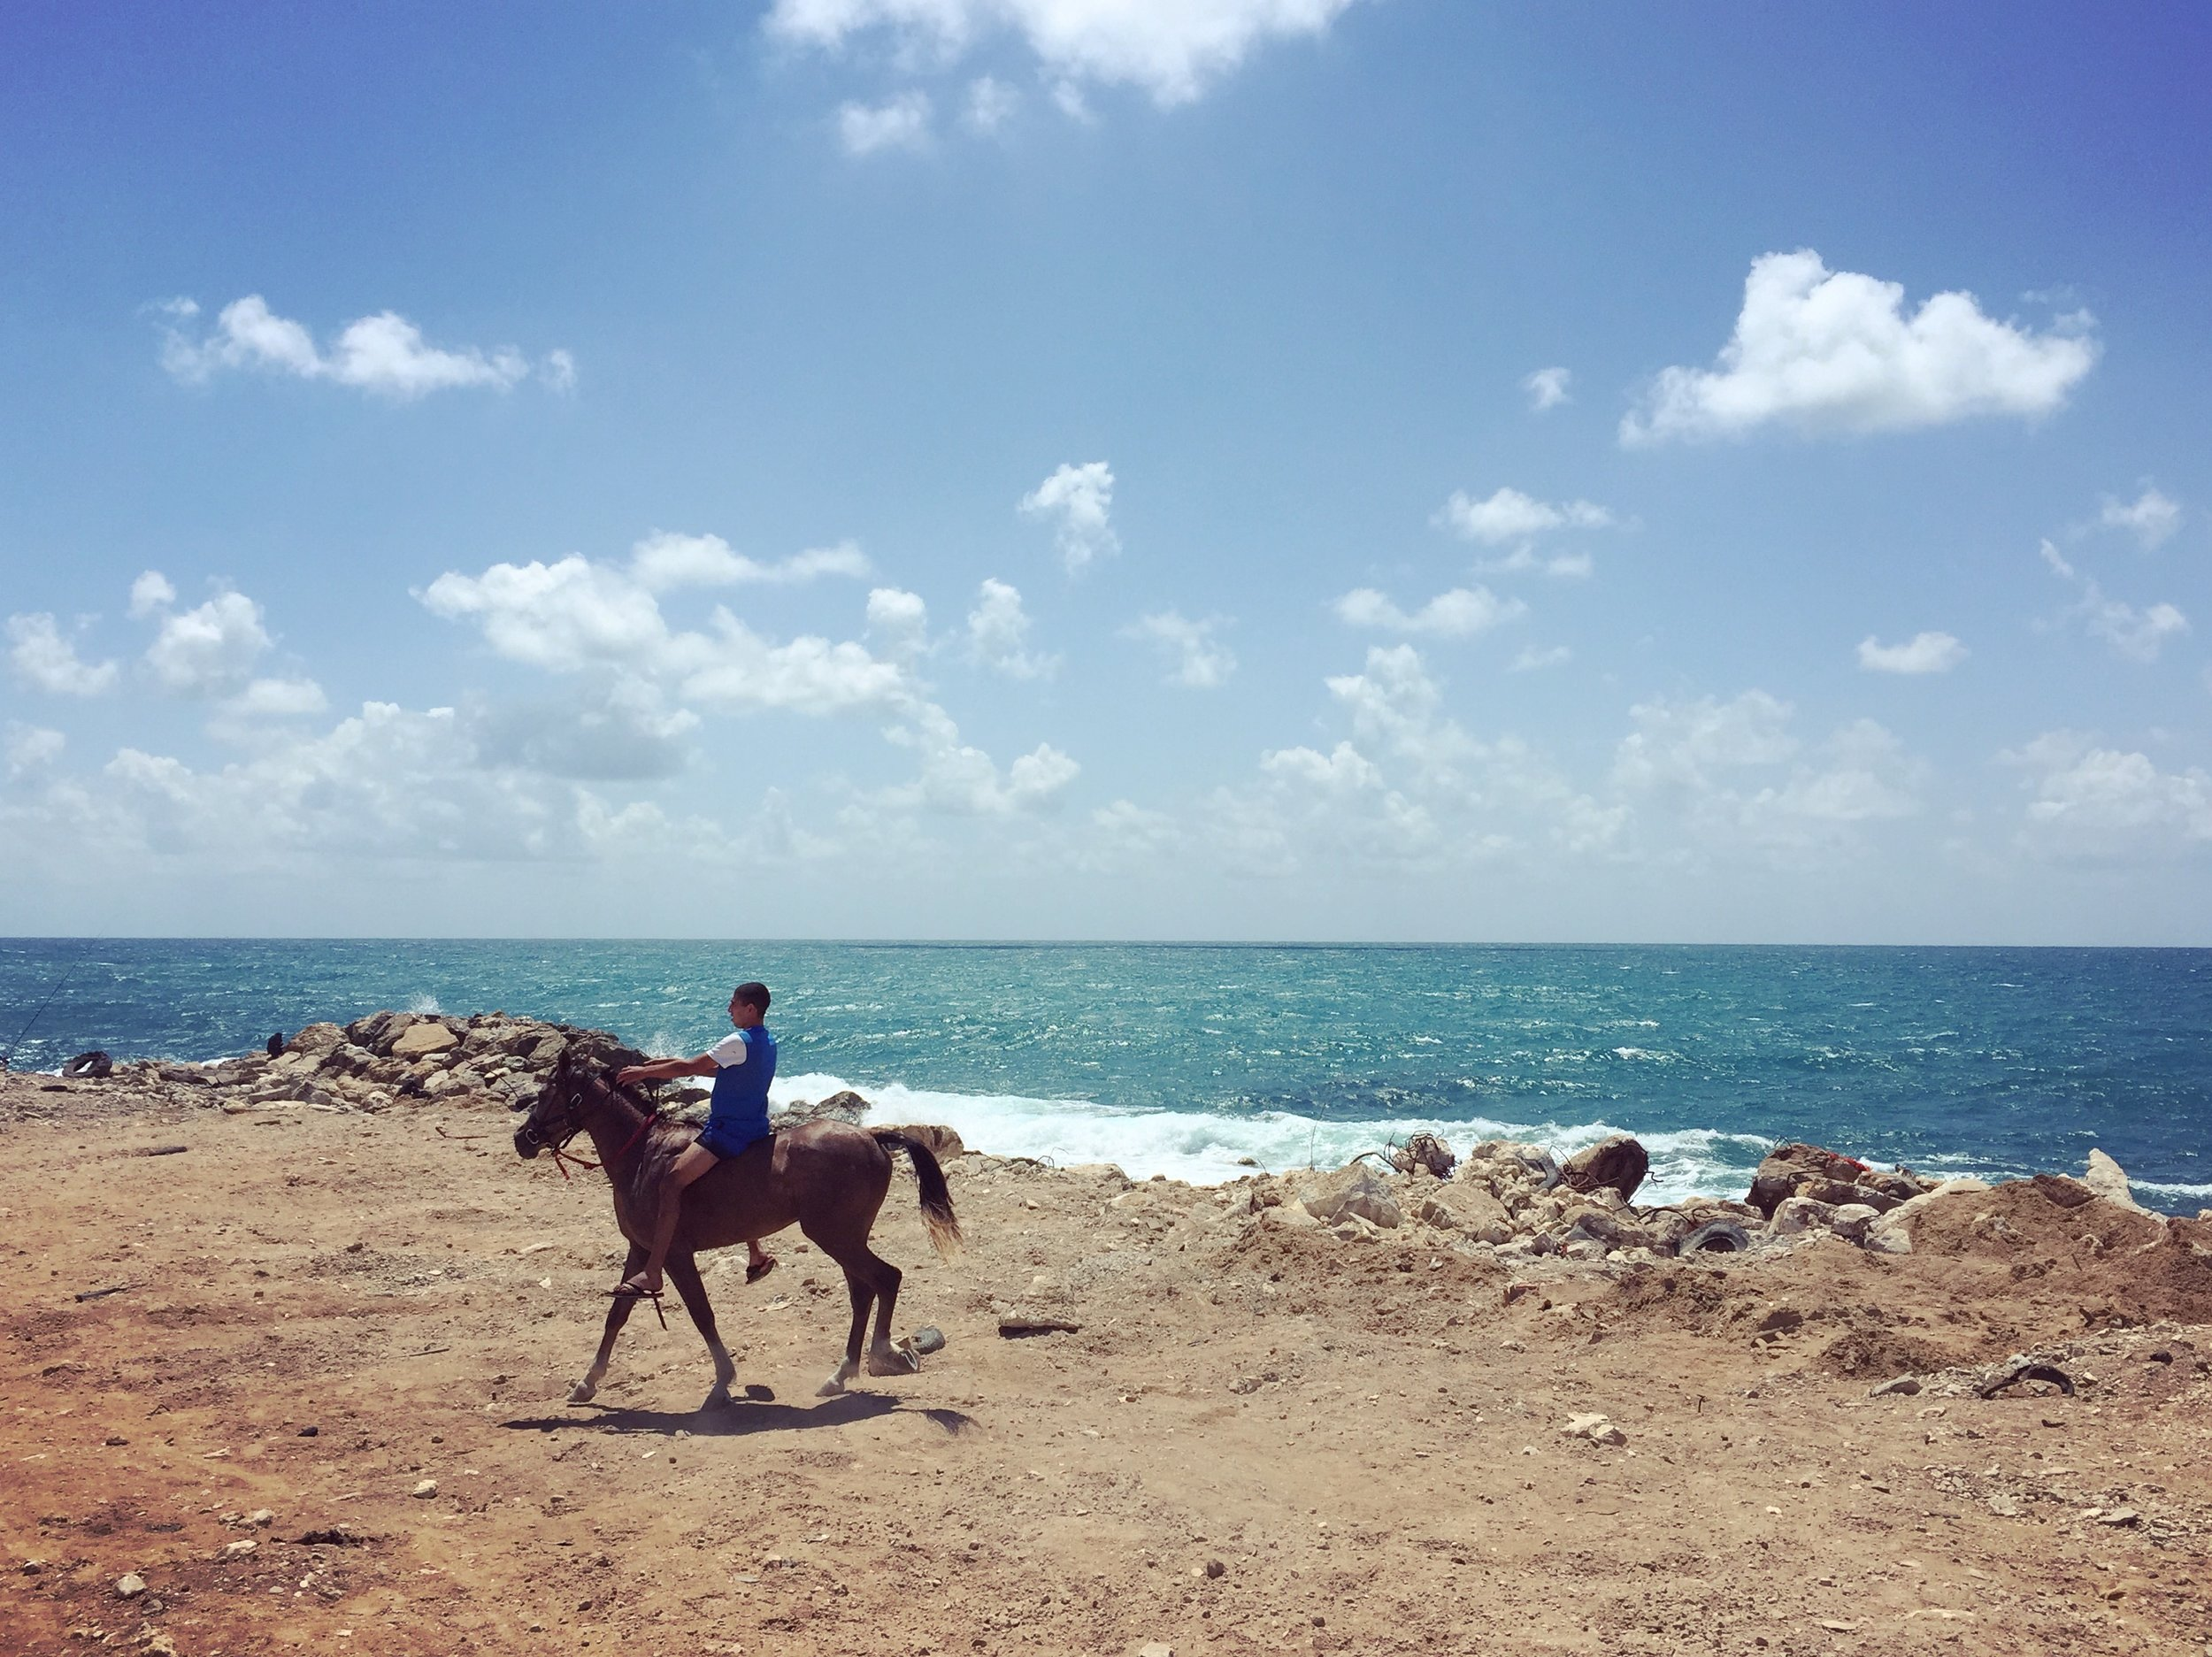 JAFFA | Boy rides a horse along the beach in the old city of Jaffa. May 27, 2016.